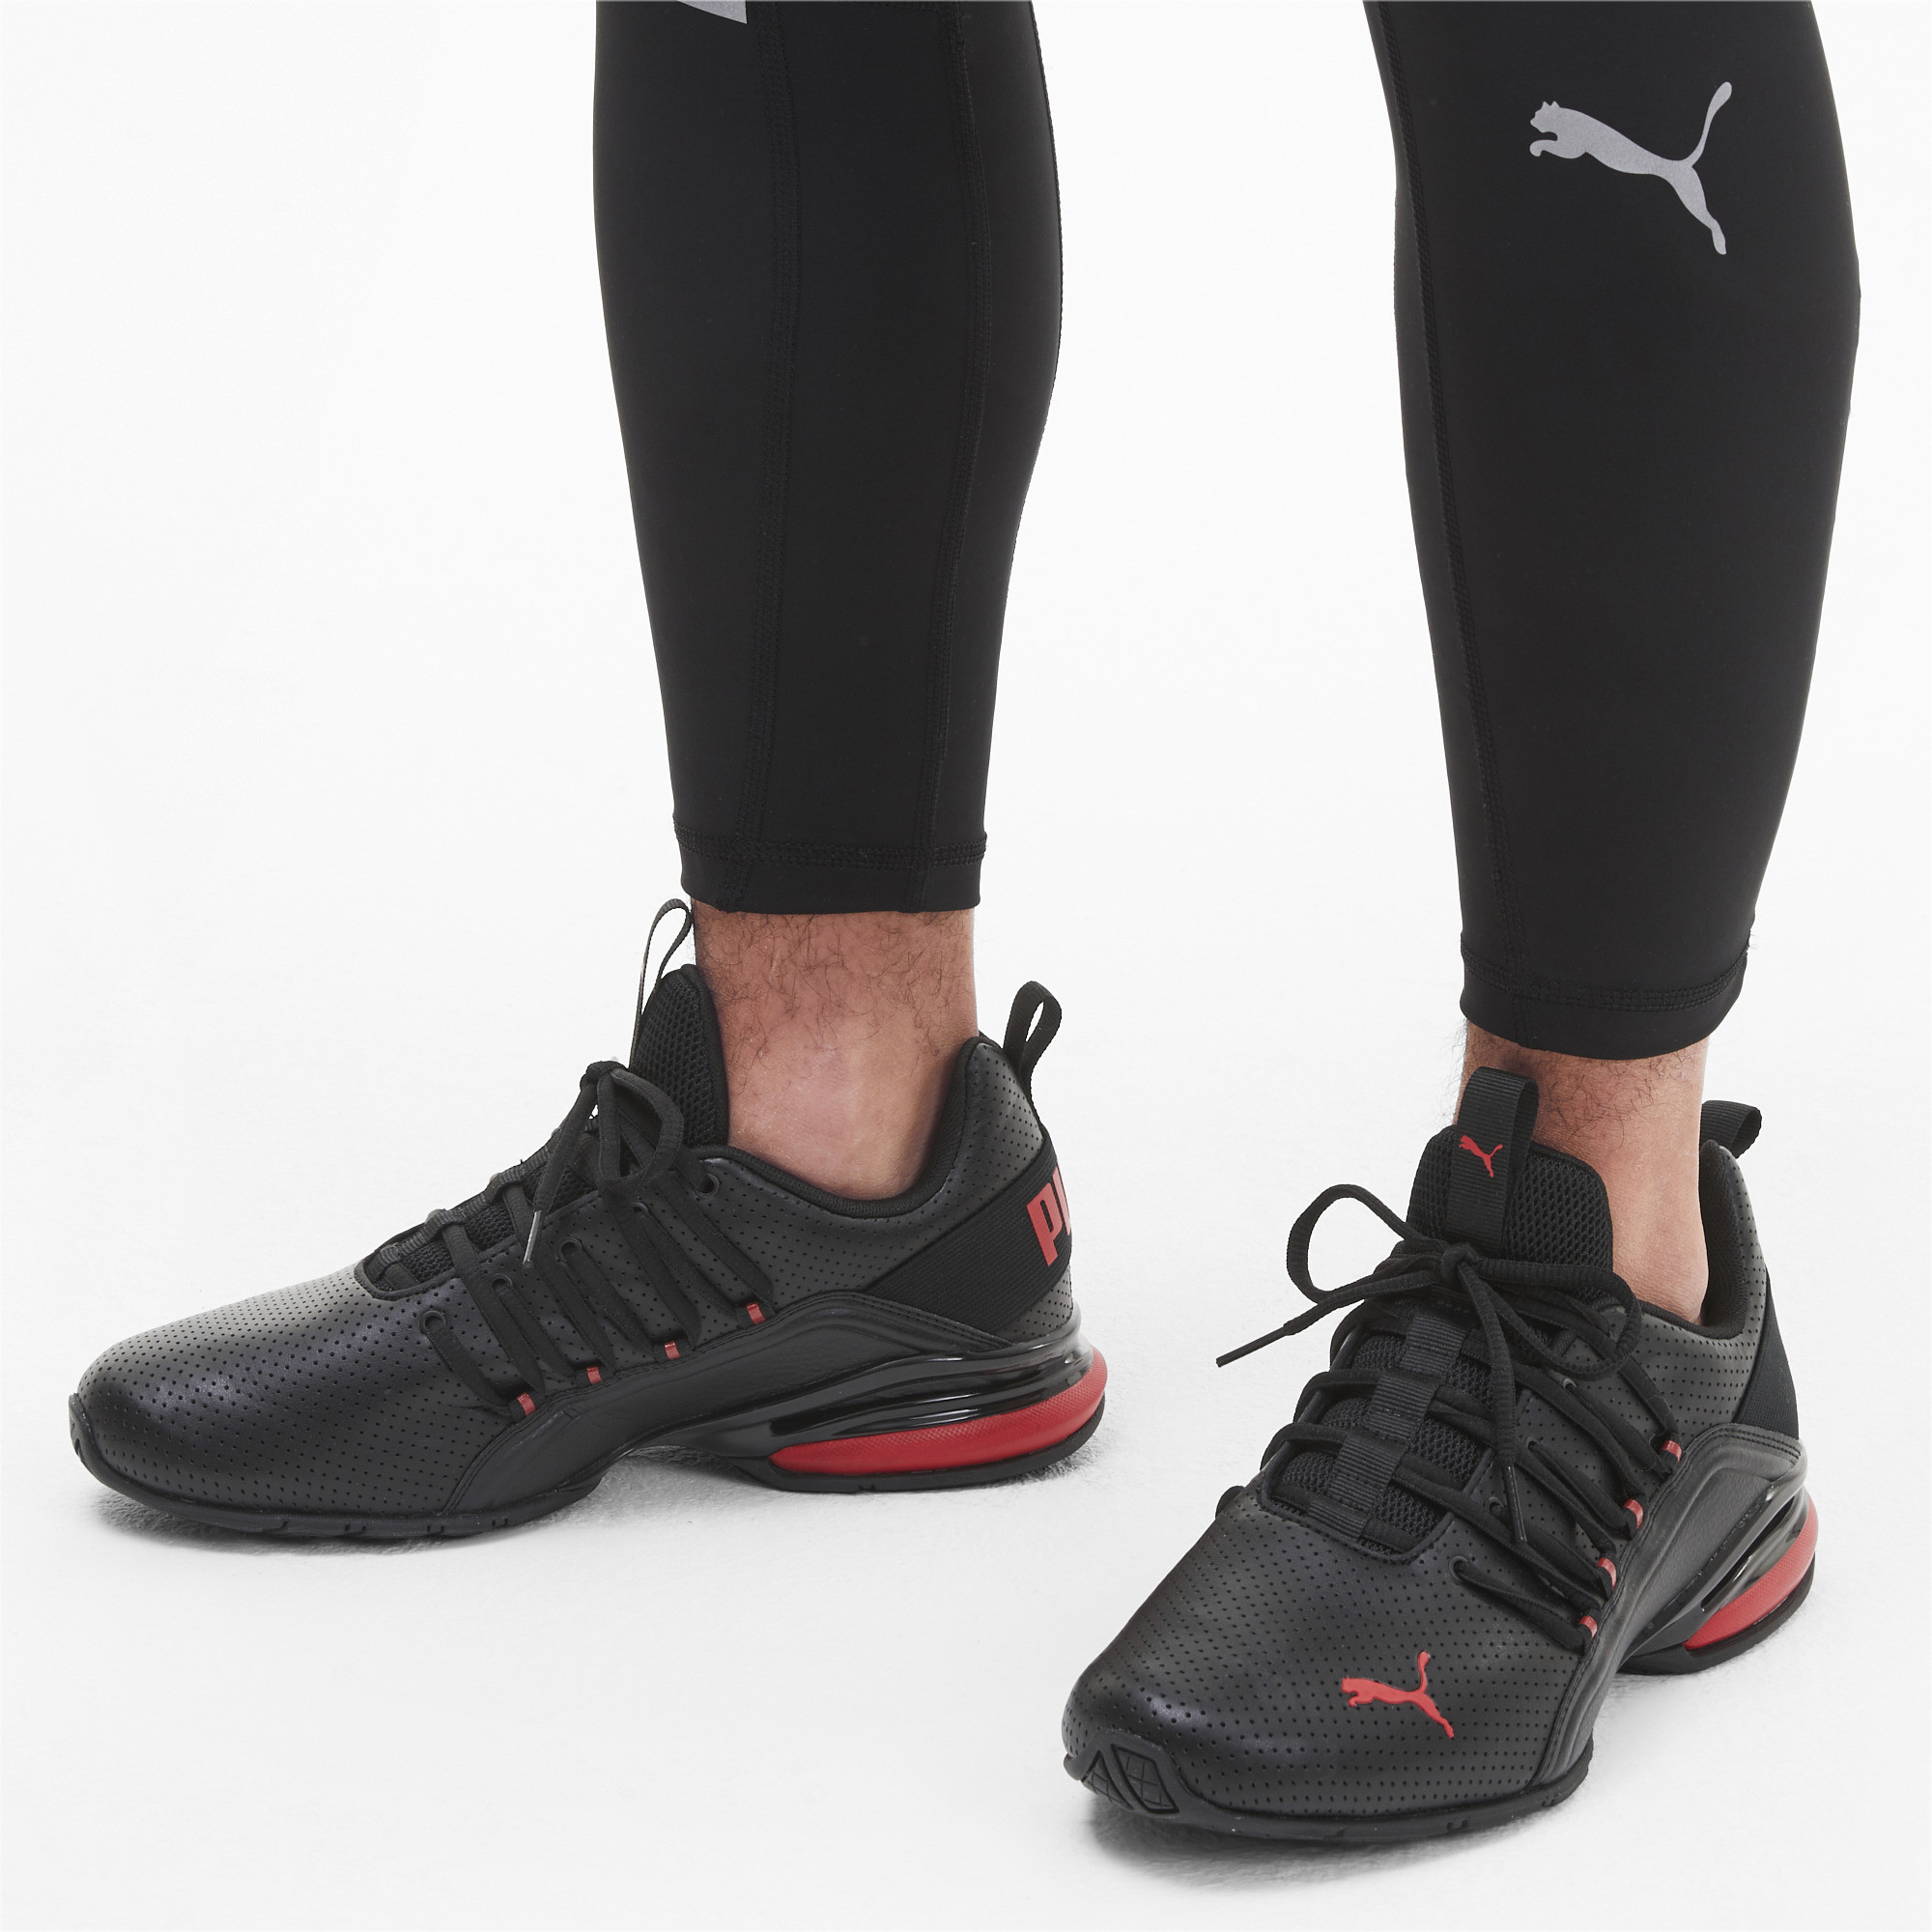 PUMA-Men-039-s-Axelion-Perf-Training-Shoes thumbnail 10